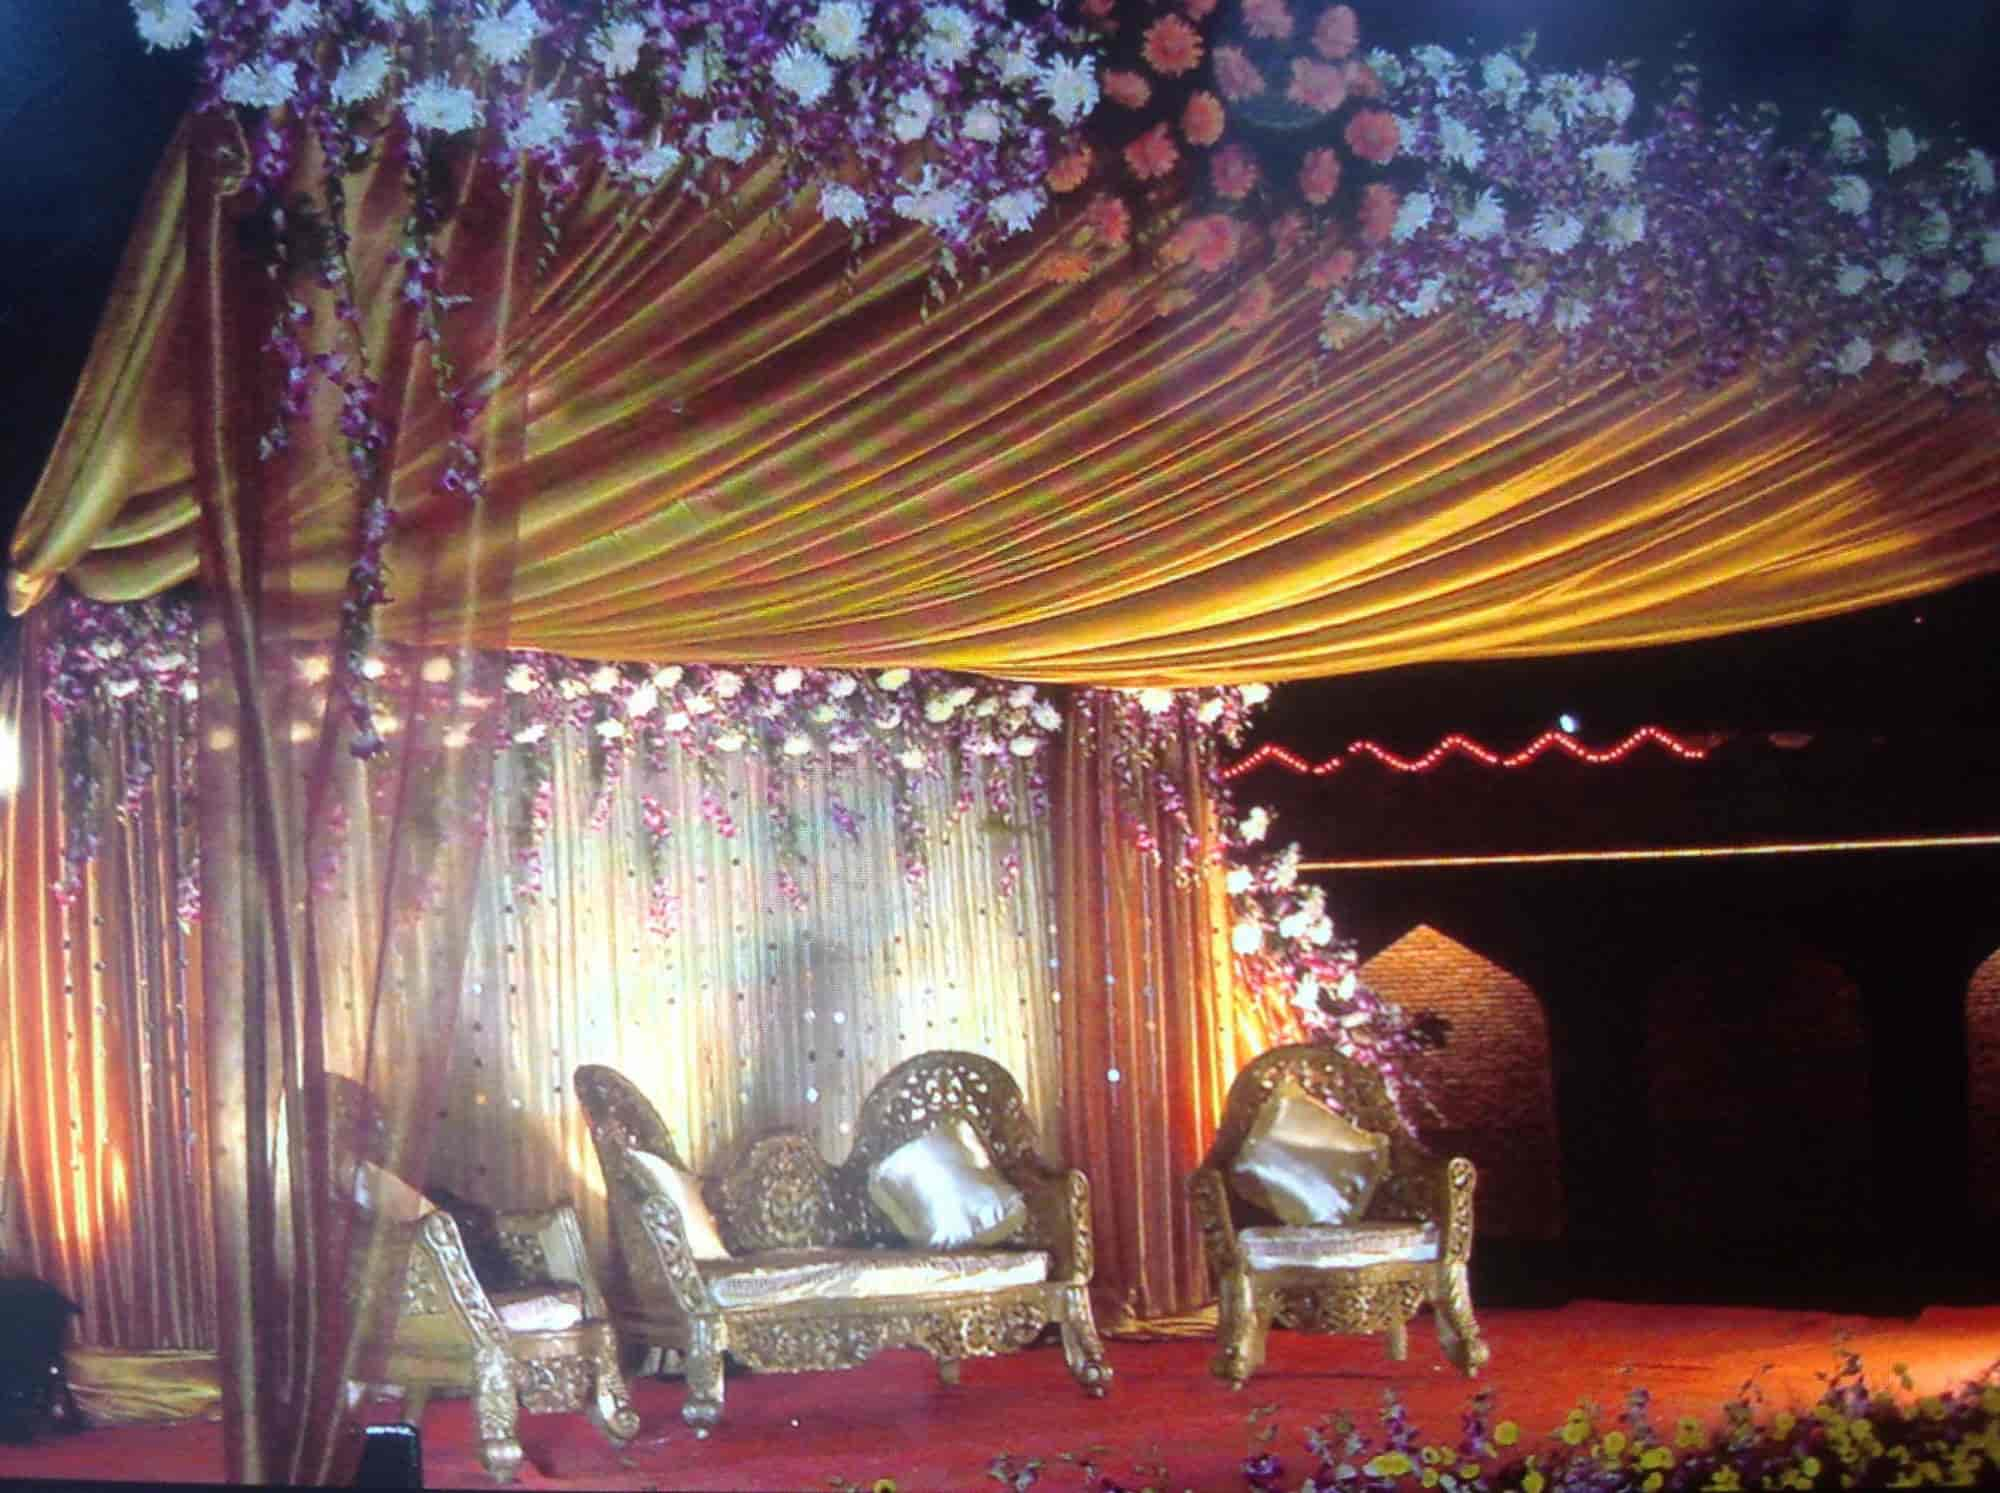 Honey flower decoration photos jalandhar cantt jalandhar flower decorator for stage honey flower decoration photos jalandhar cantt jalandhar florists junglespirit Choice Image